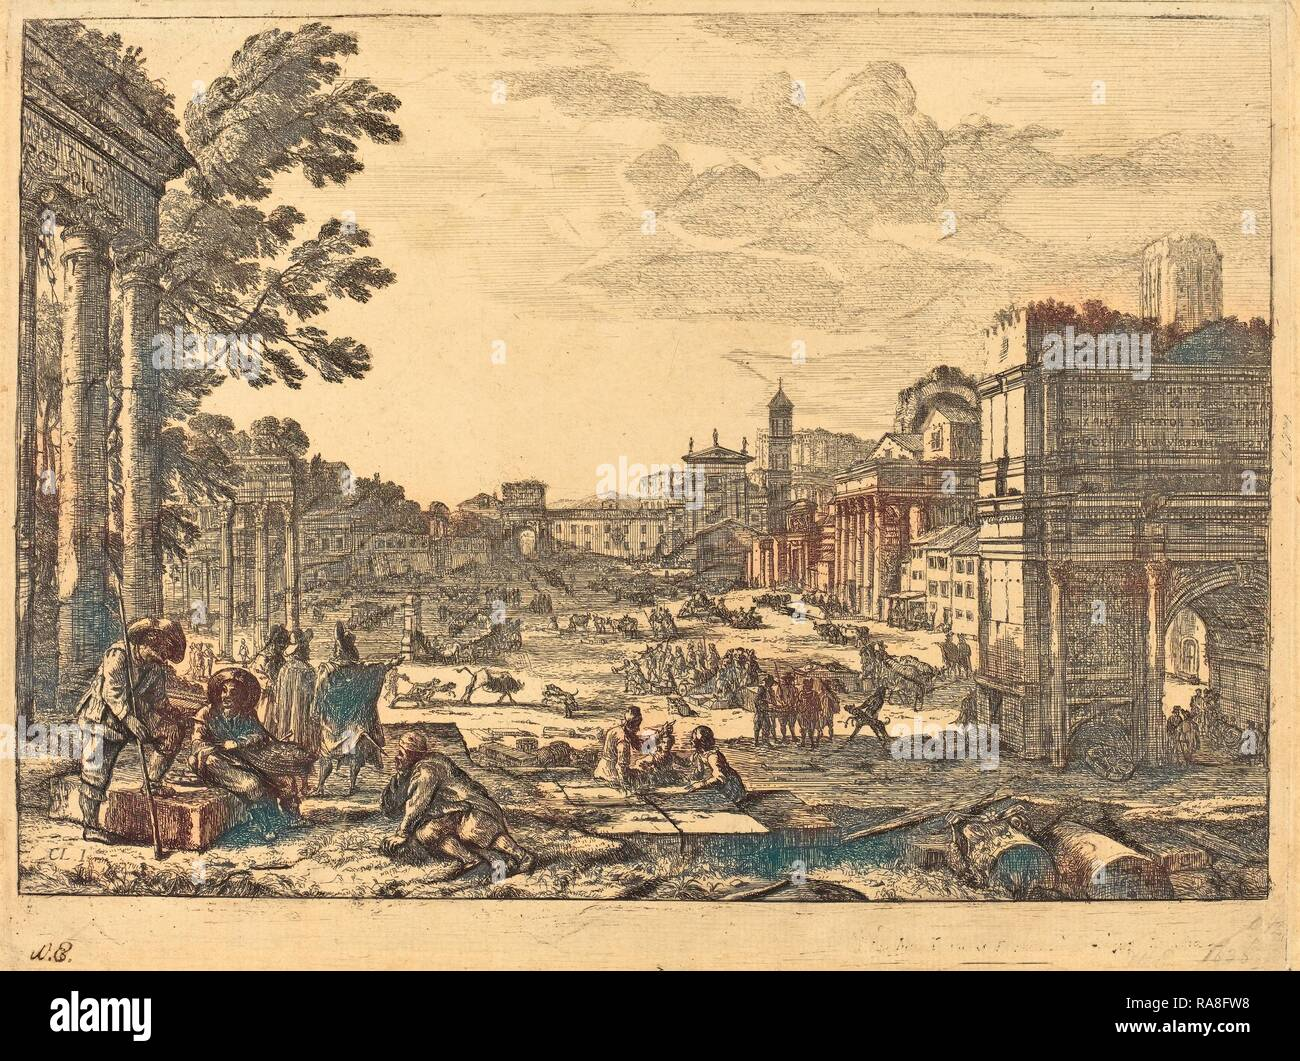 Claude Lorrain (French, 1604-1605 - 1682), The Roman Forum (Le Campo Vaccino), 1636, etching. Reimagined - Stock Image